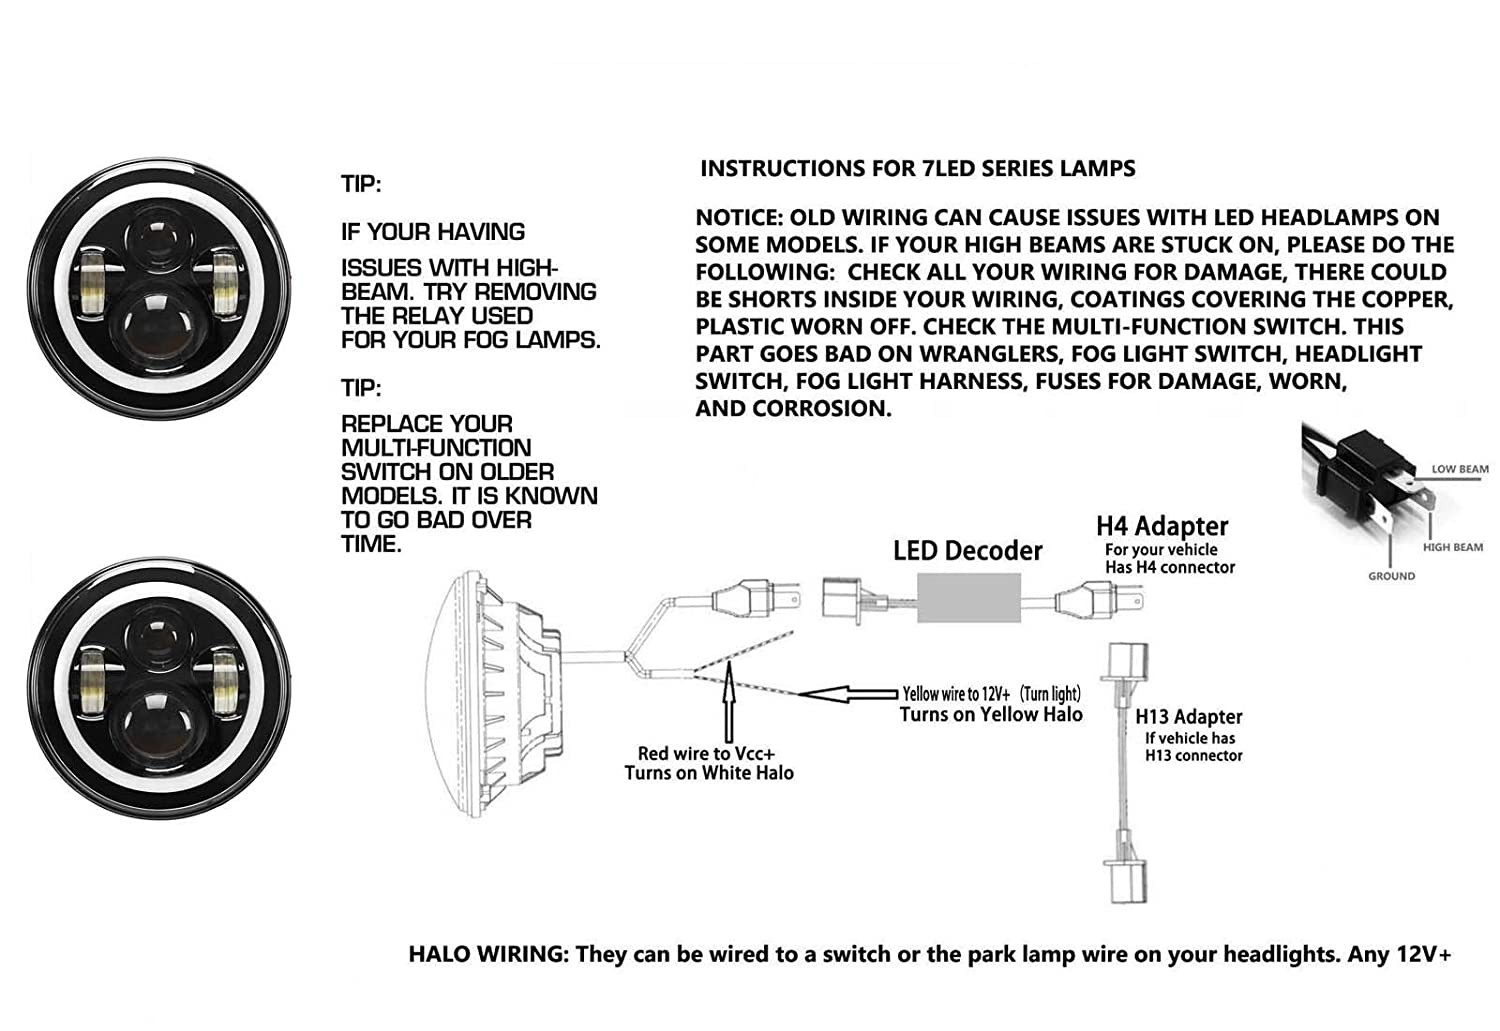 Halo Lamp Wiring Diagram Detailed Schematics Diagrams Amazon Com 2pcs 7 Inch Led Round Lights Angel Eye Headlight